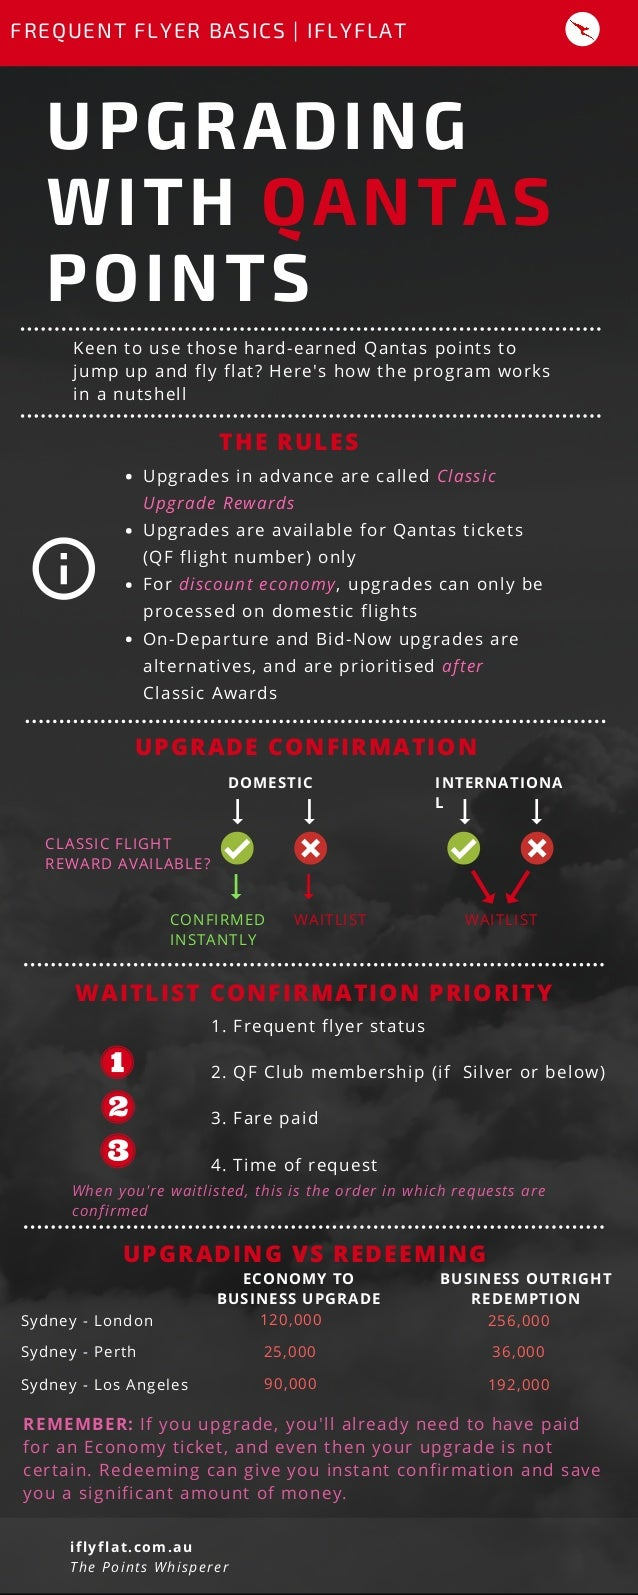 How to - Upgrading with Qantas frequent flyer points